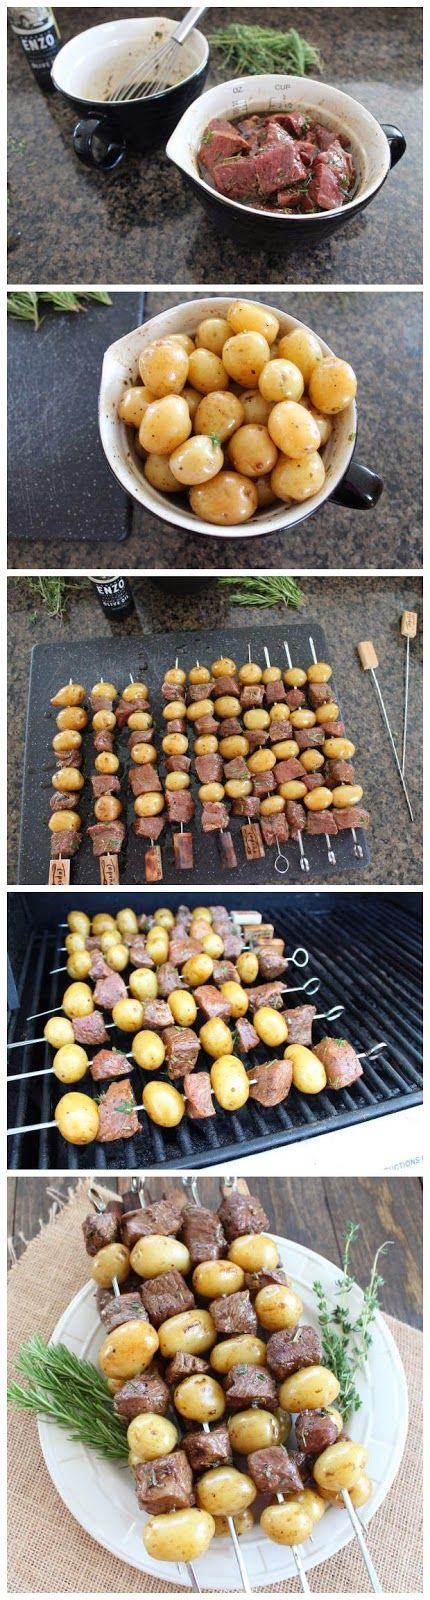 Rosemary Steak Skewers for the tailgate?